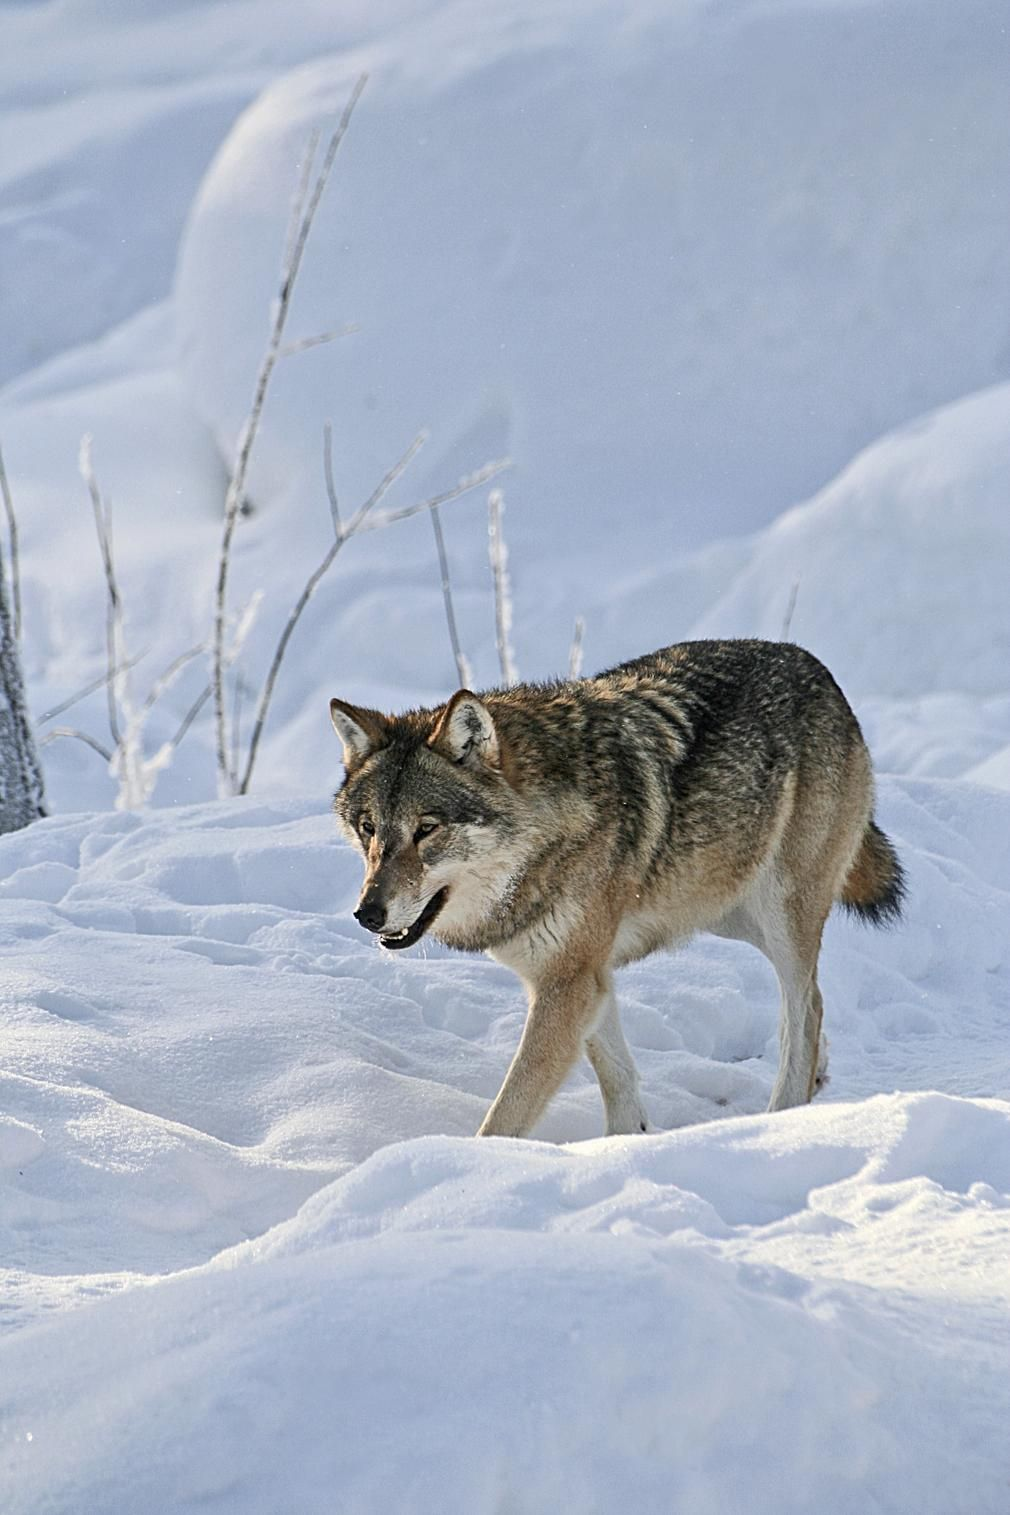 Embedded image permalink - Aku Eronen @aku_ero · Nov 11 a wild wulf in the #forest - #nature #animals - photo by Visit Finland